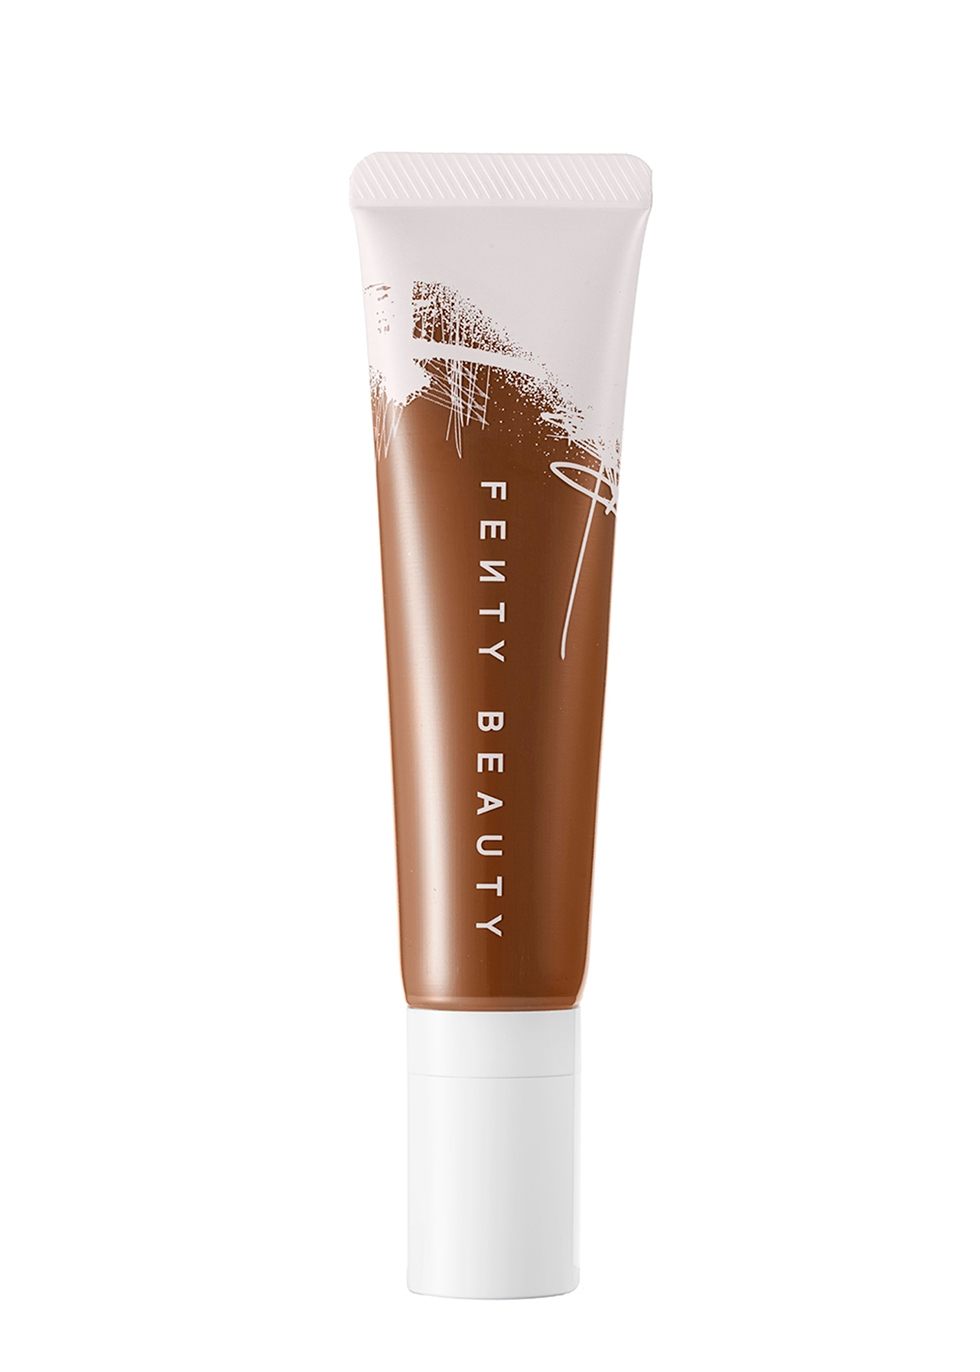 Fenty Beauty Pro Filt R Hydrating Longwear Foundation Harvey Nichols